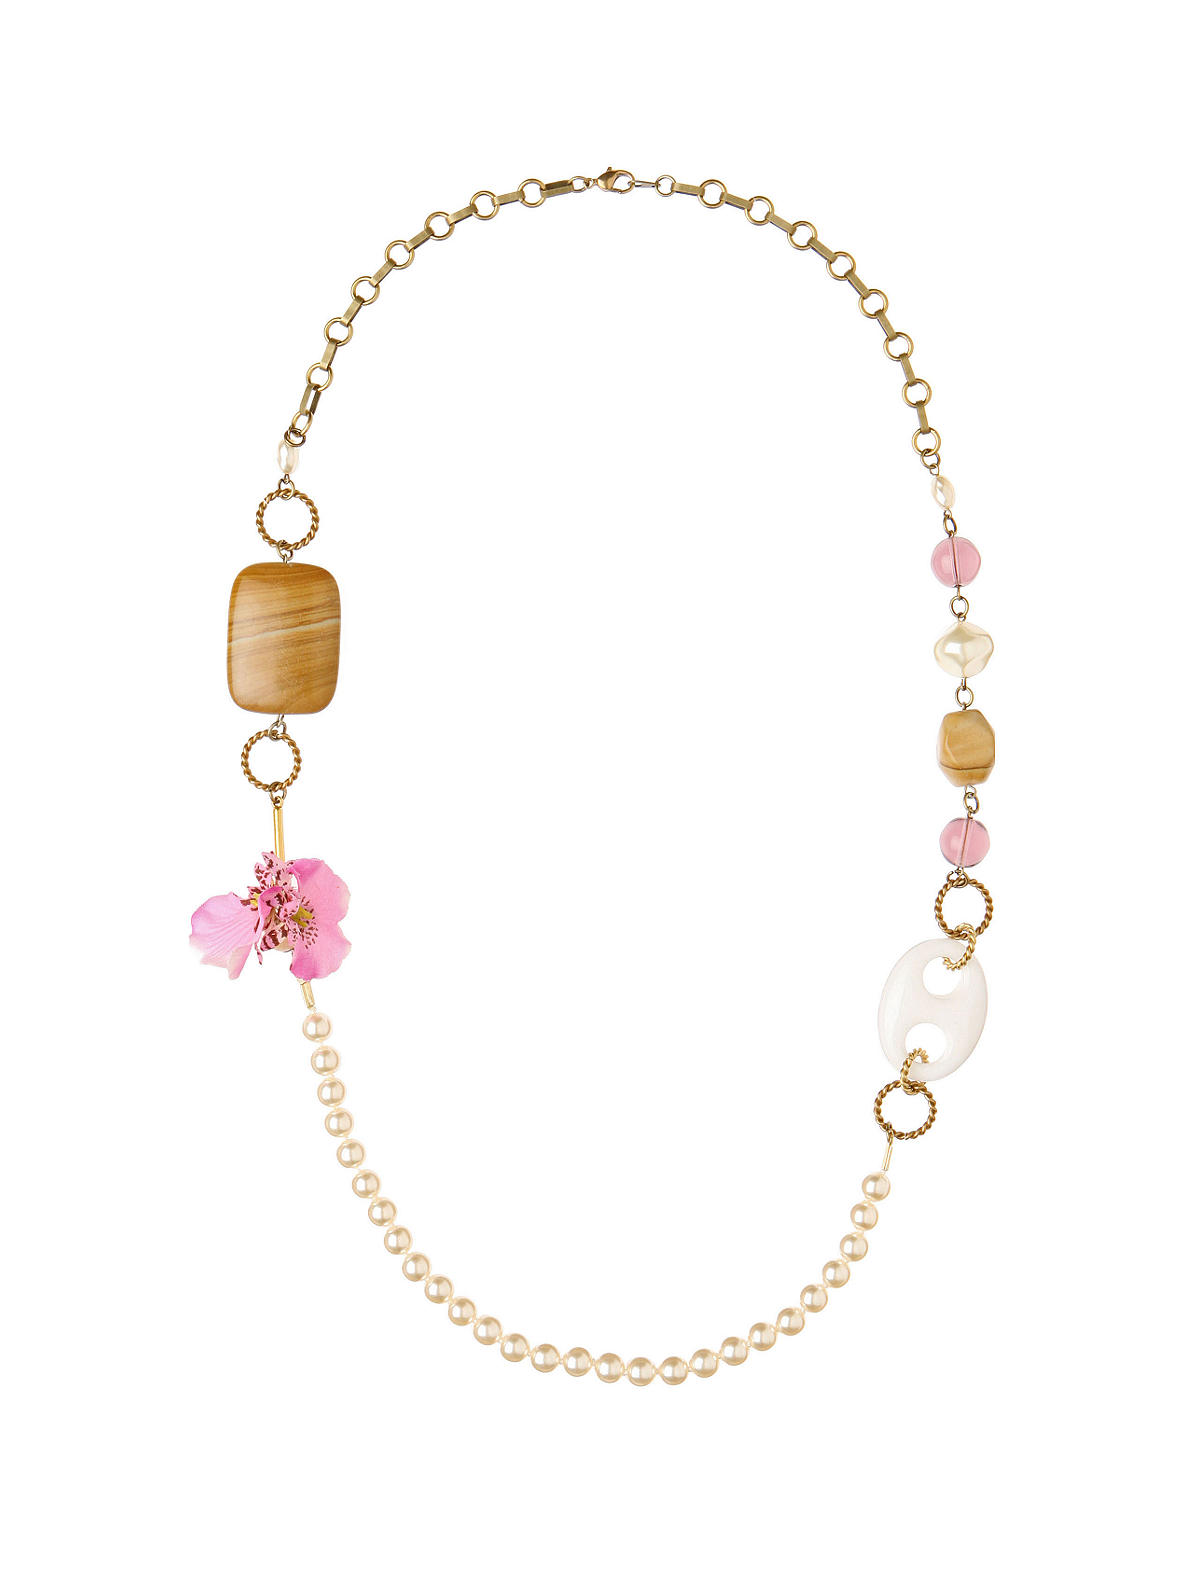 Cherie Necklace - Anthropologie.com :  long necklace statement anthropologie